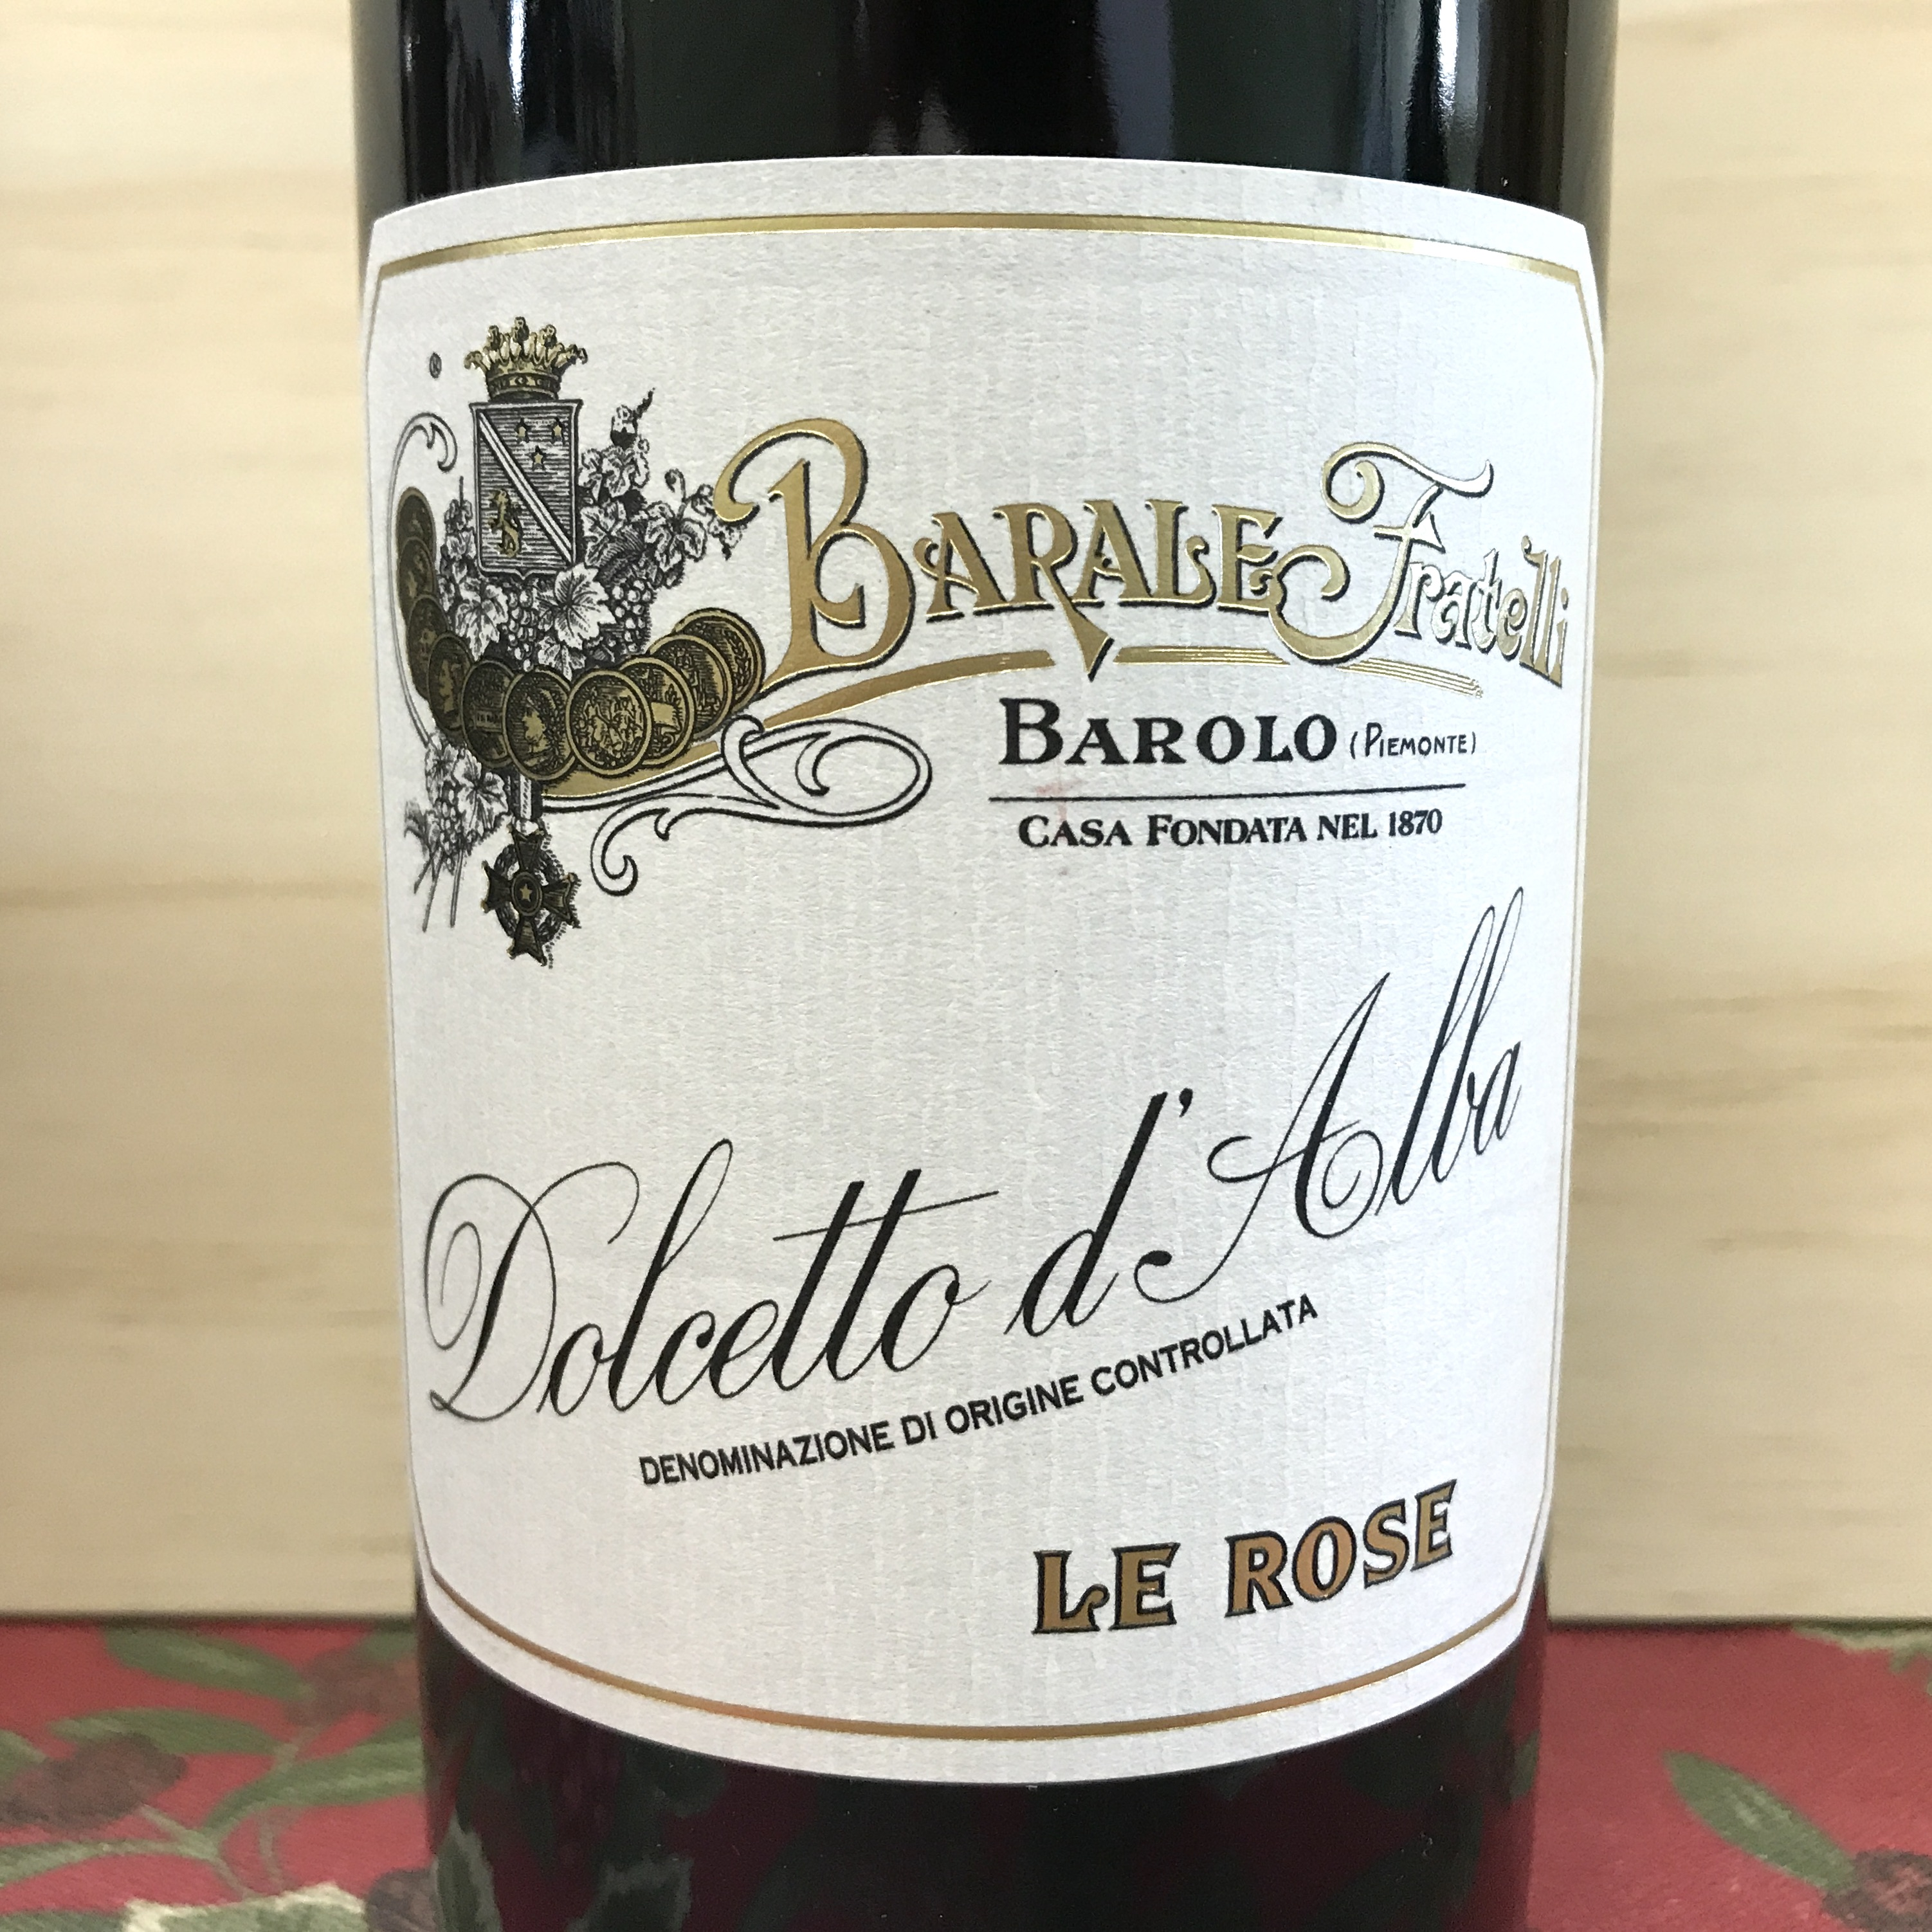 Barale Fratelli Dolcetto d'Alba Le Rose 2019 Organic